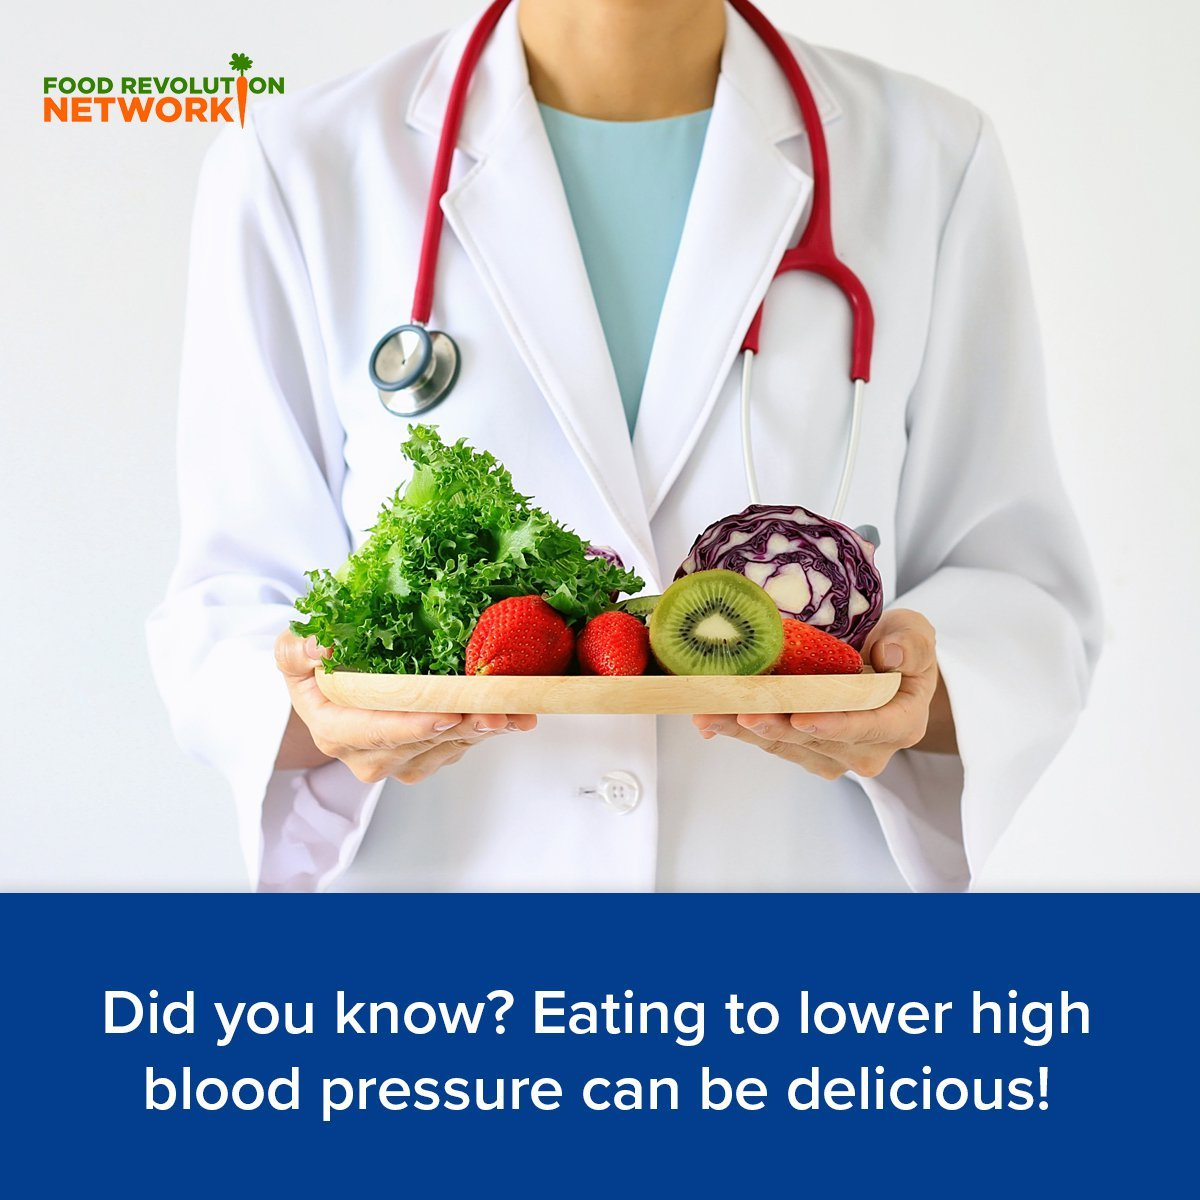 Did you know? Eating to lower high blood pressure can be delicious!